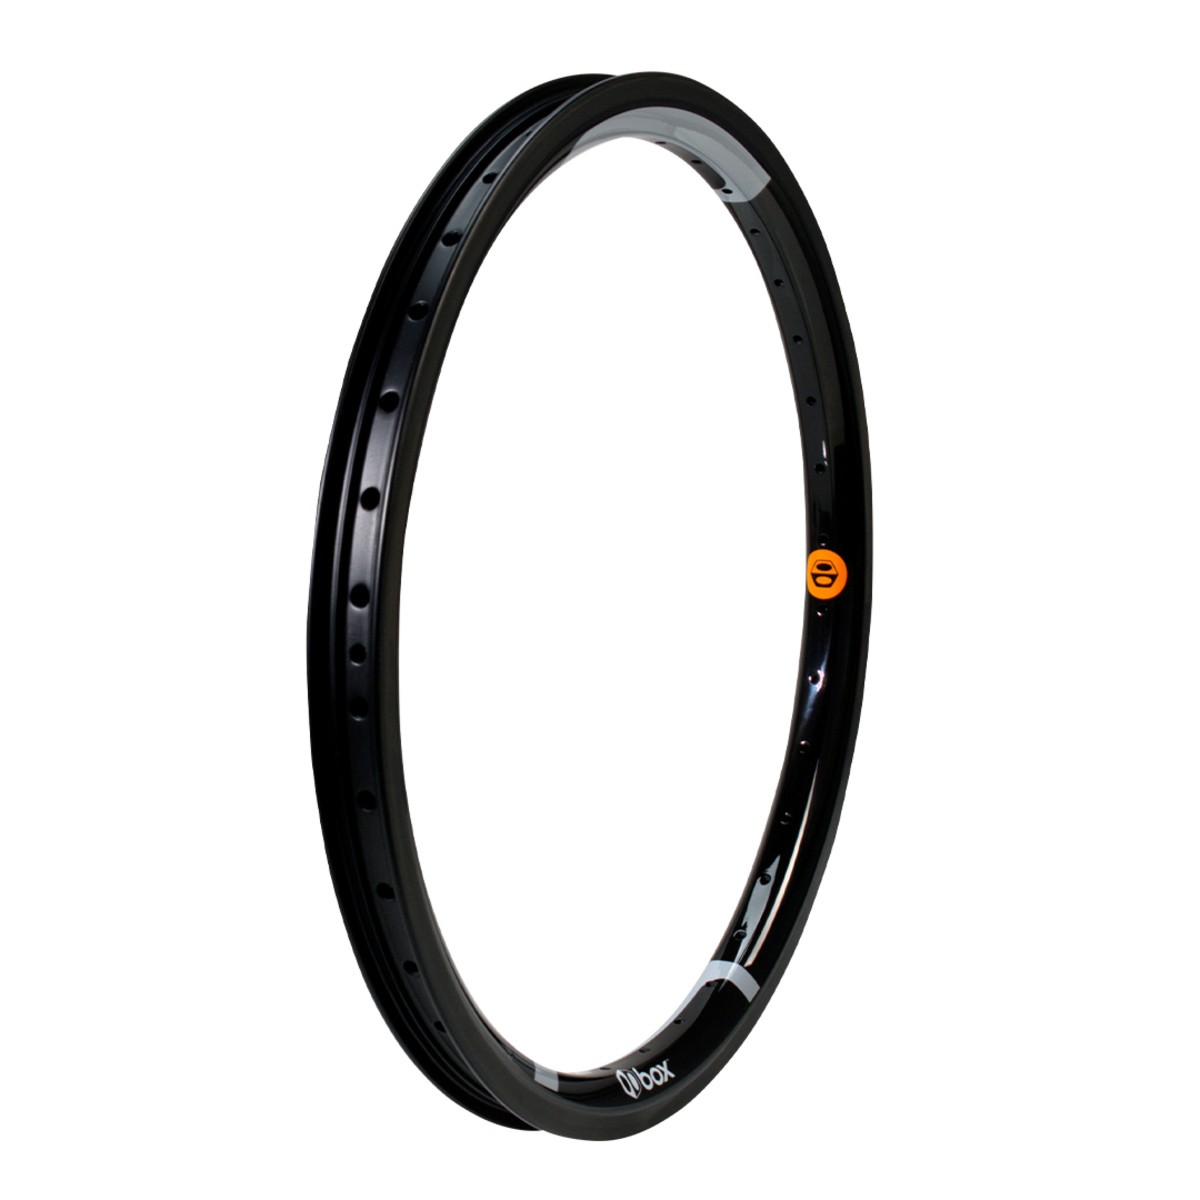 box-one-carbon-406mm-36h-rim-no-brake-surface